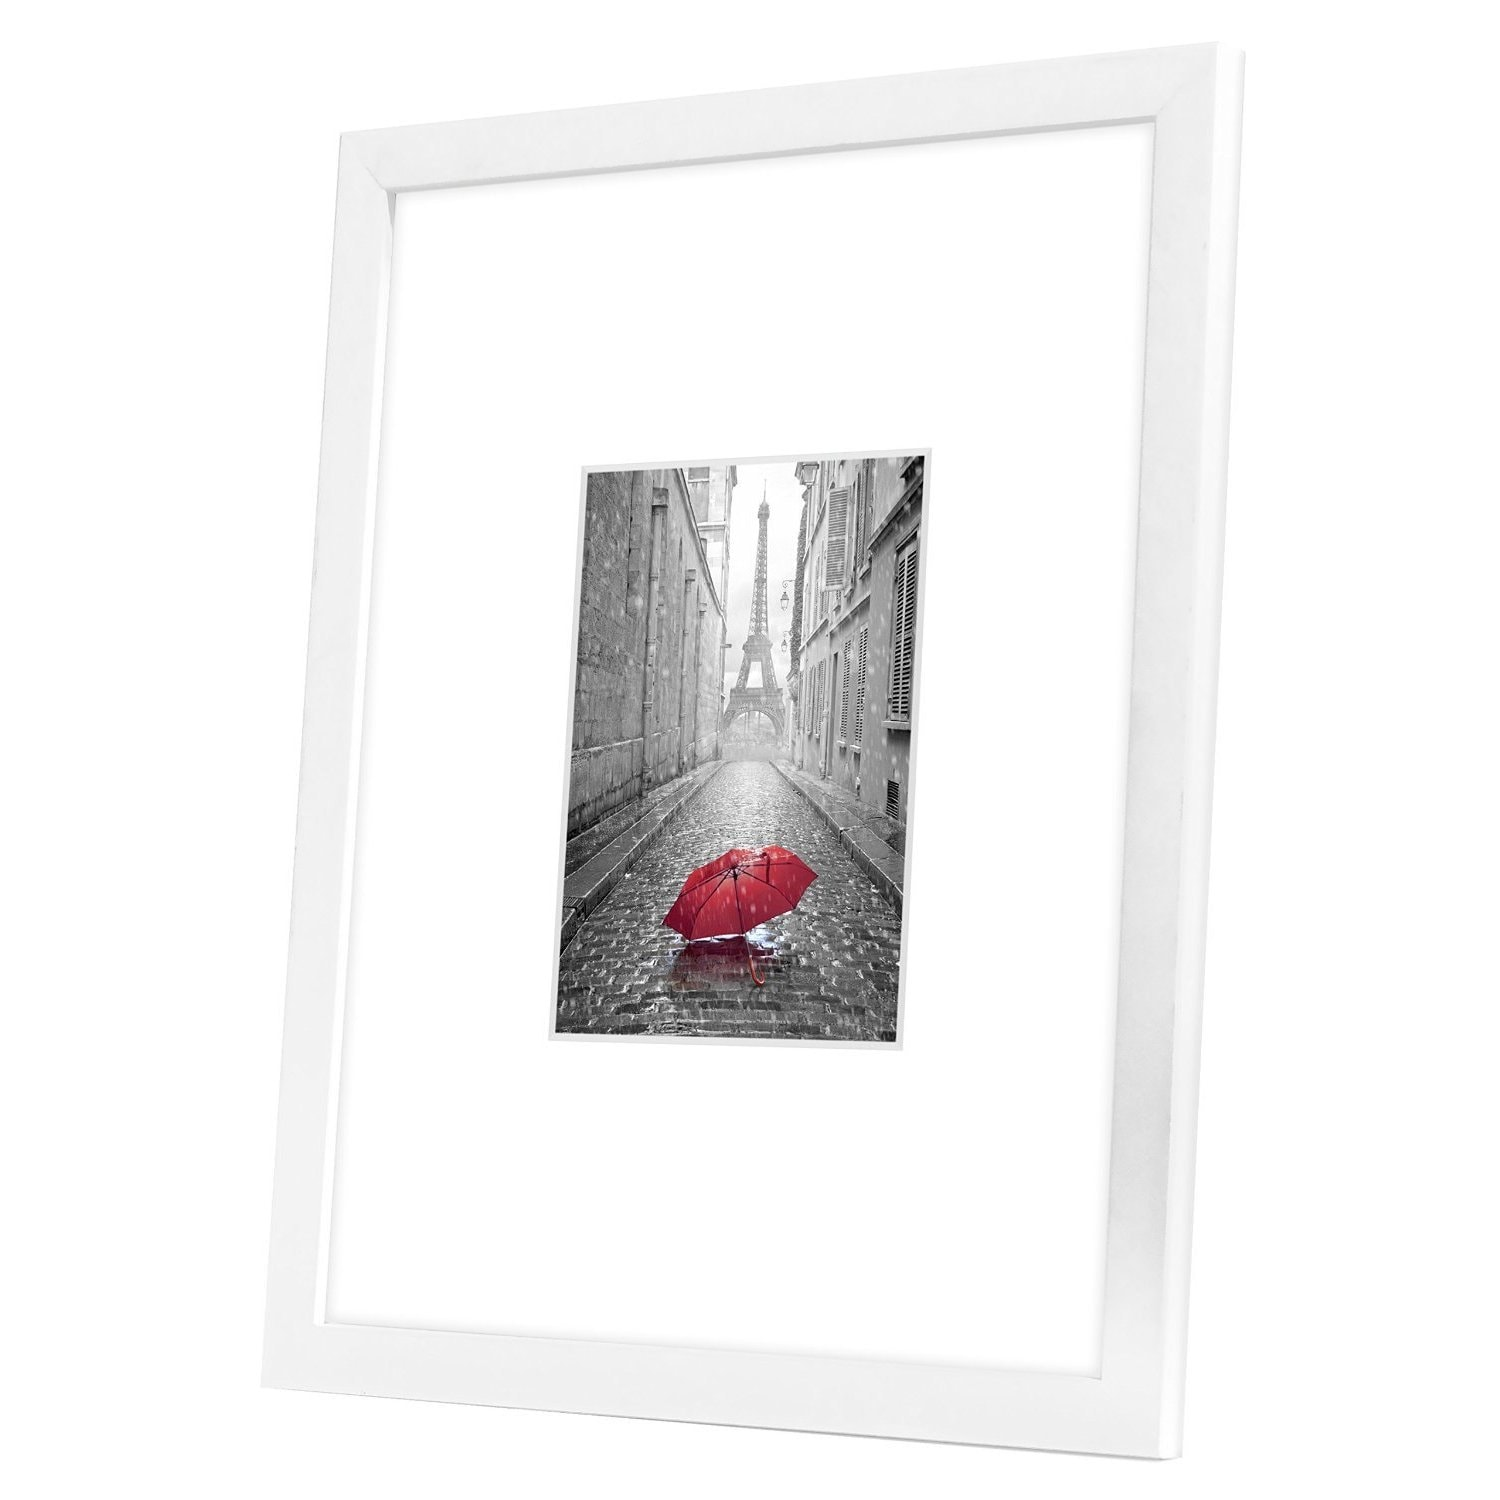 11x14 White Picture Frame - Matted to Fit Pictures 5x7 Inches or ...